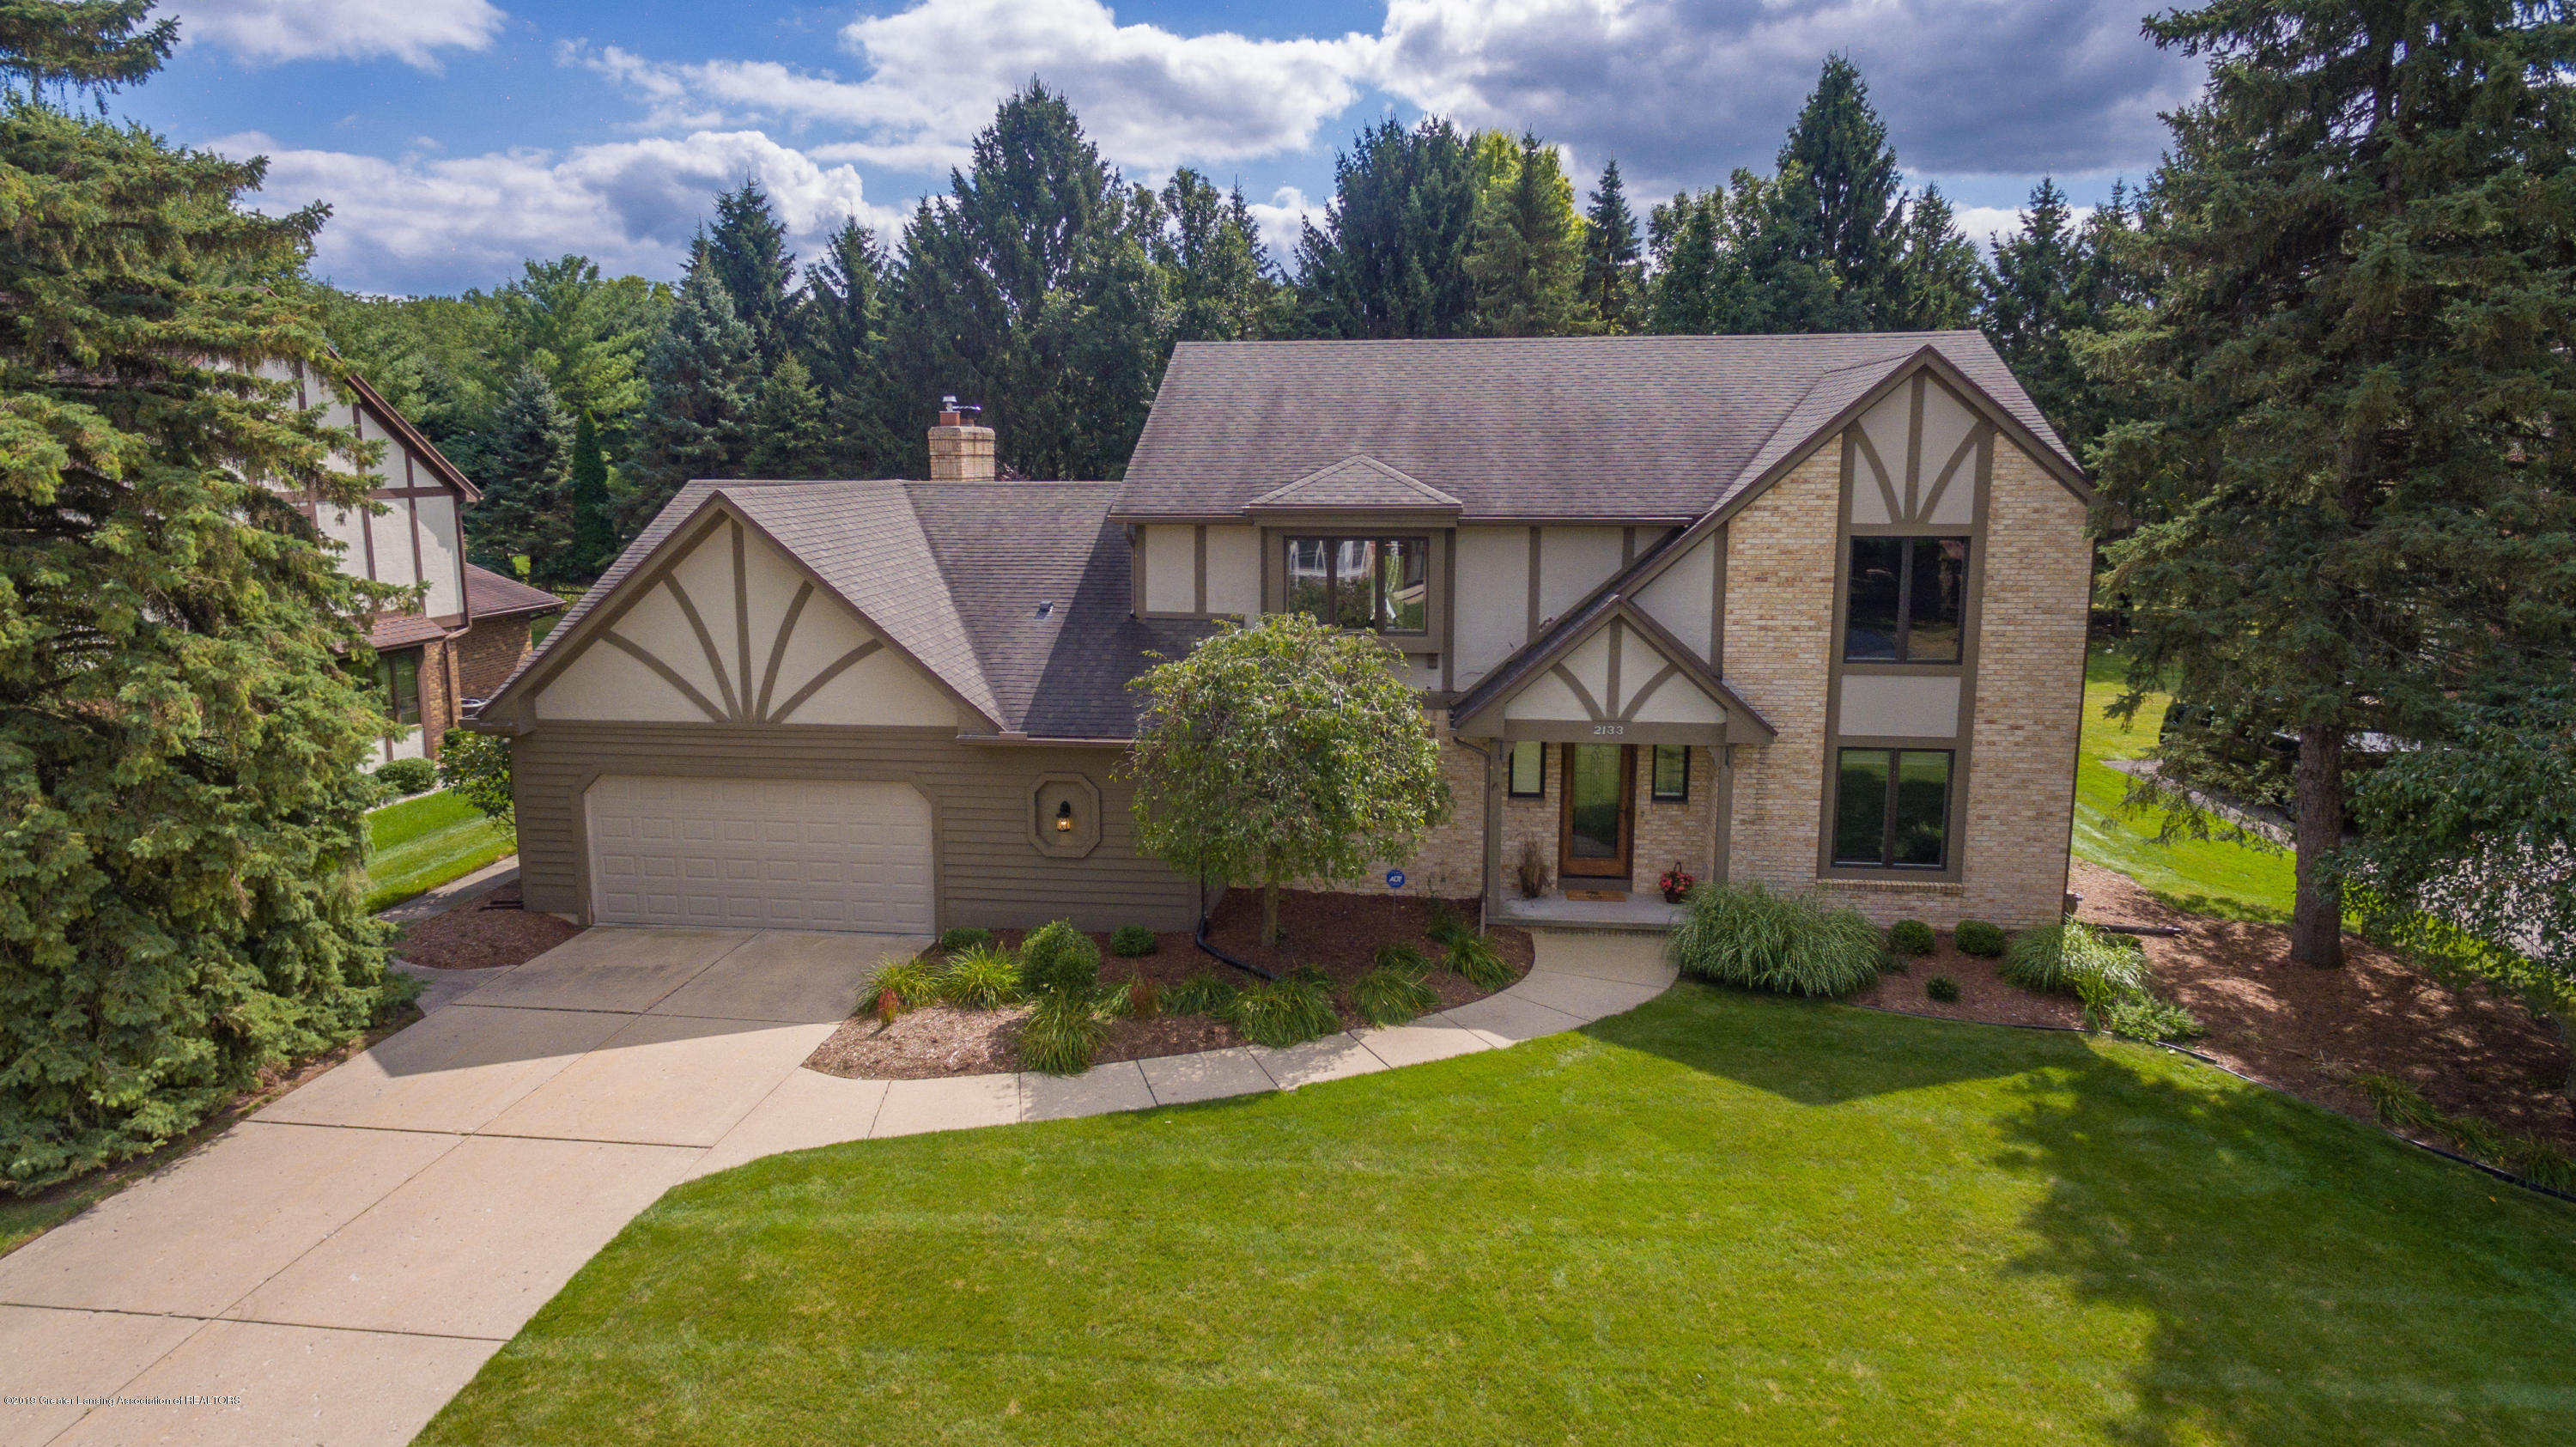 2133 Woodfield Rd - Aerial View - 55